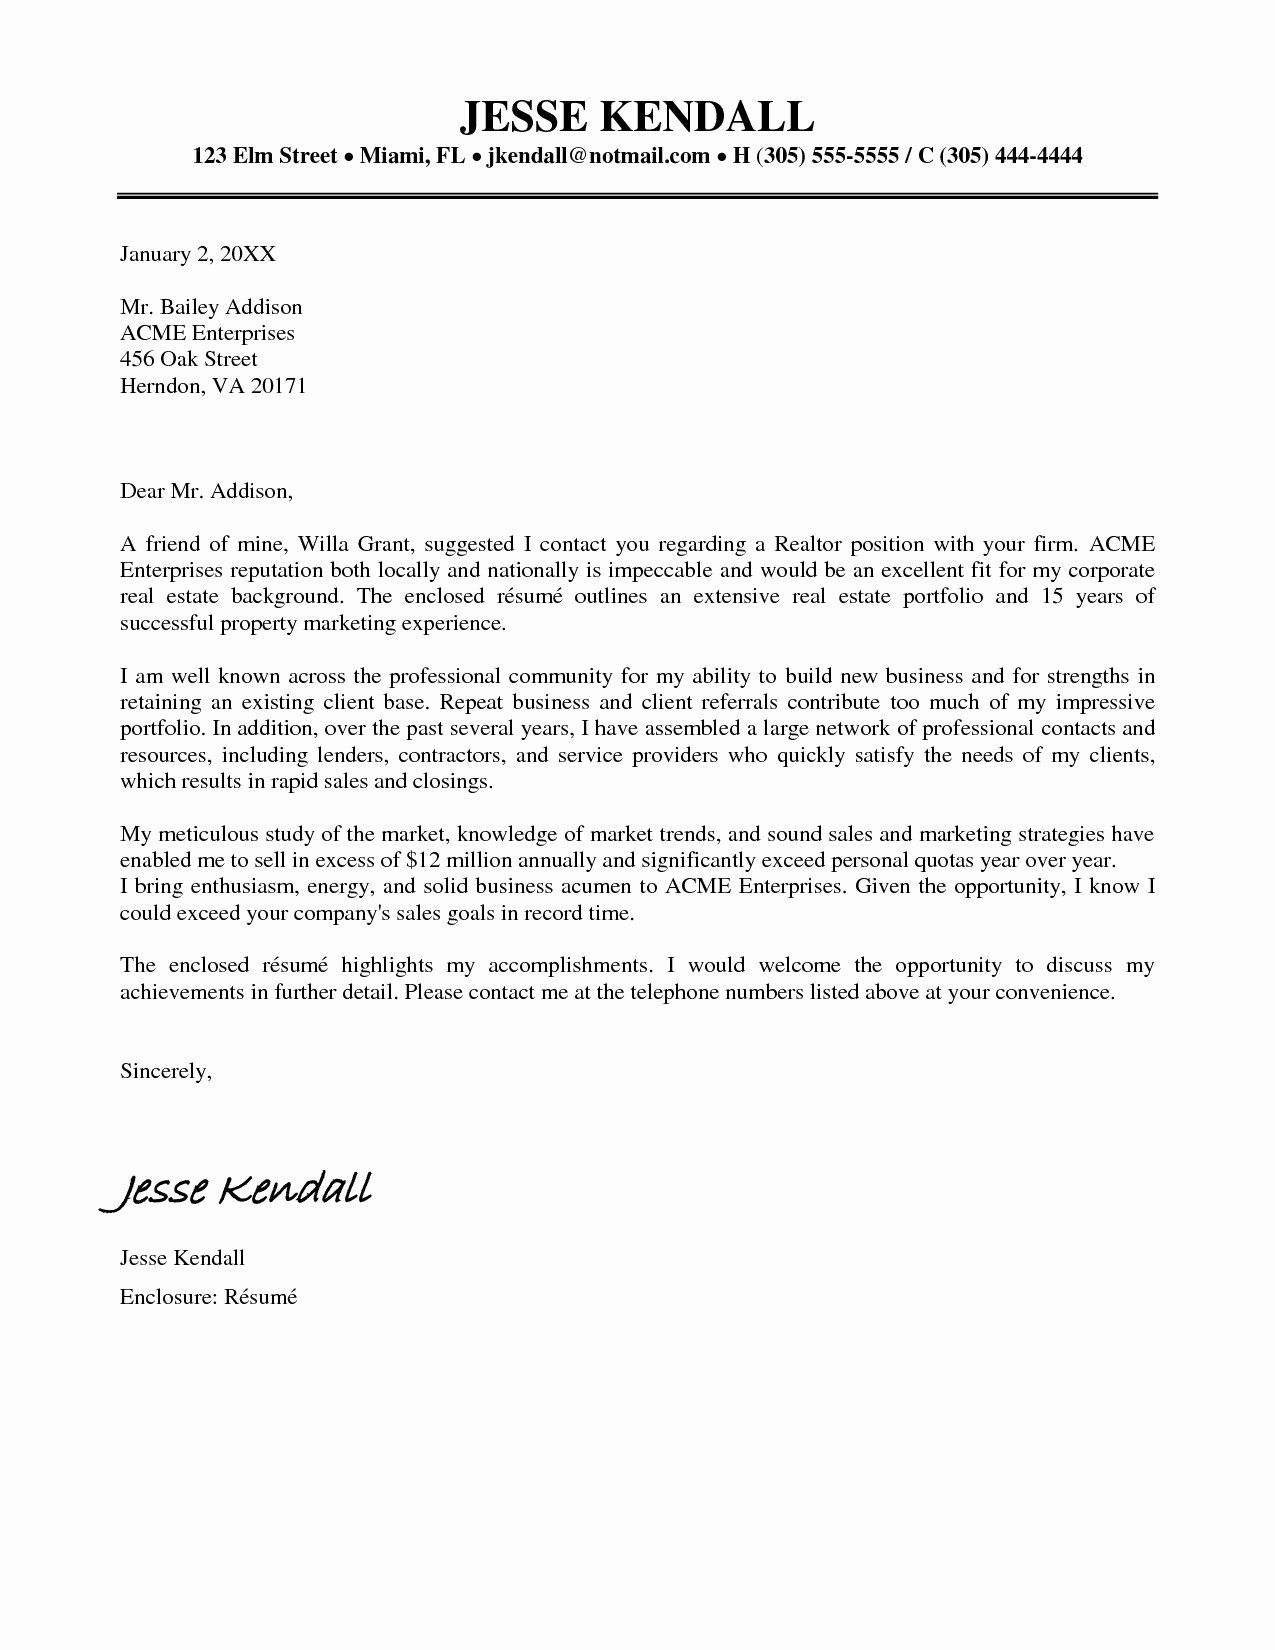 Real Estate Introduction Letter to Friends Template Beautiful Real Estate Introduction Letter to Friends Template Download